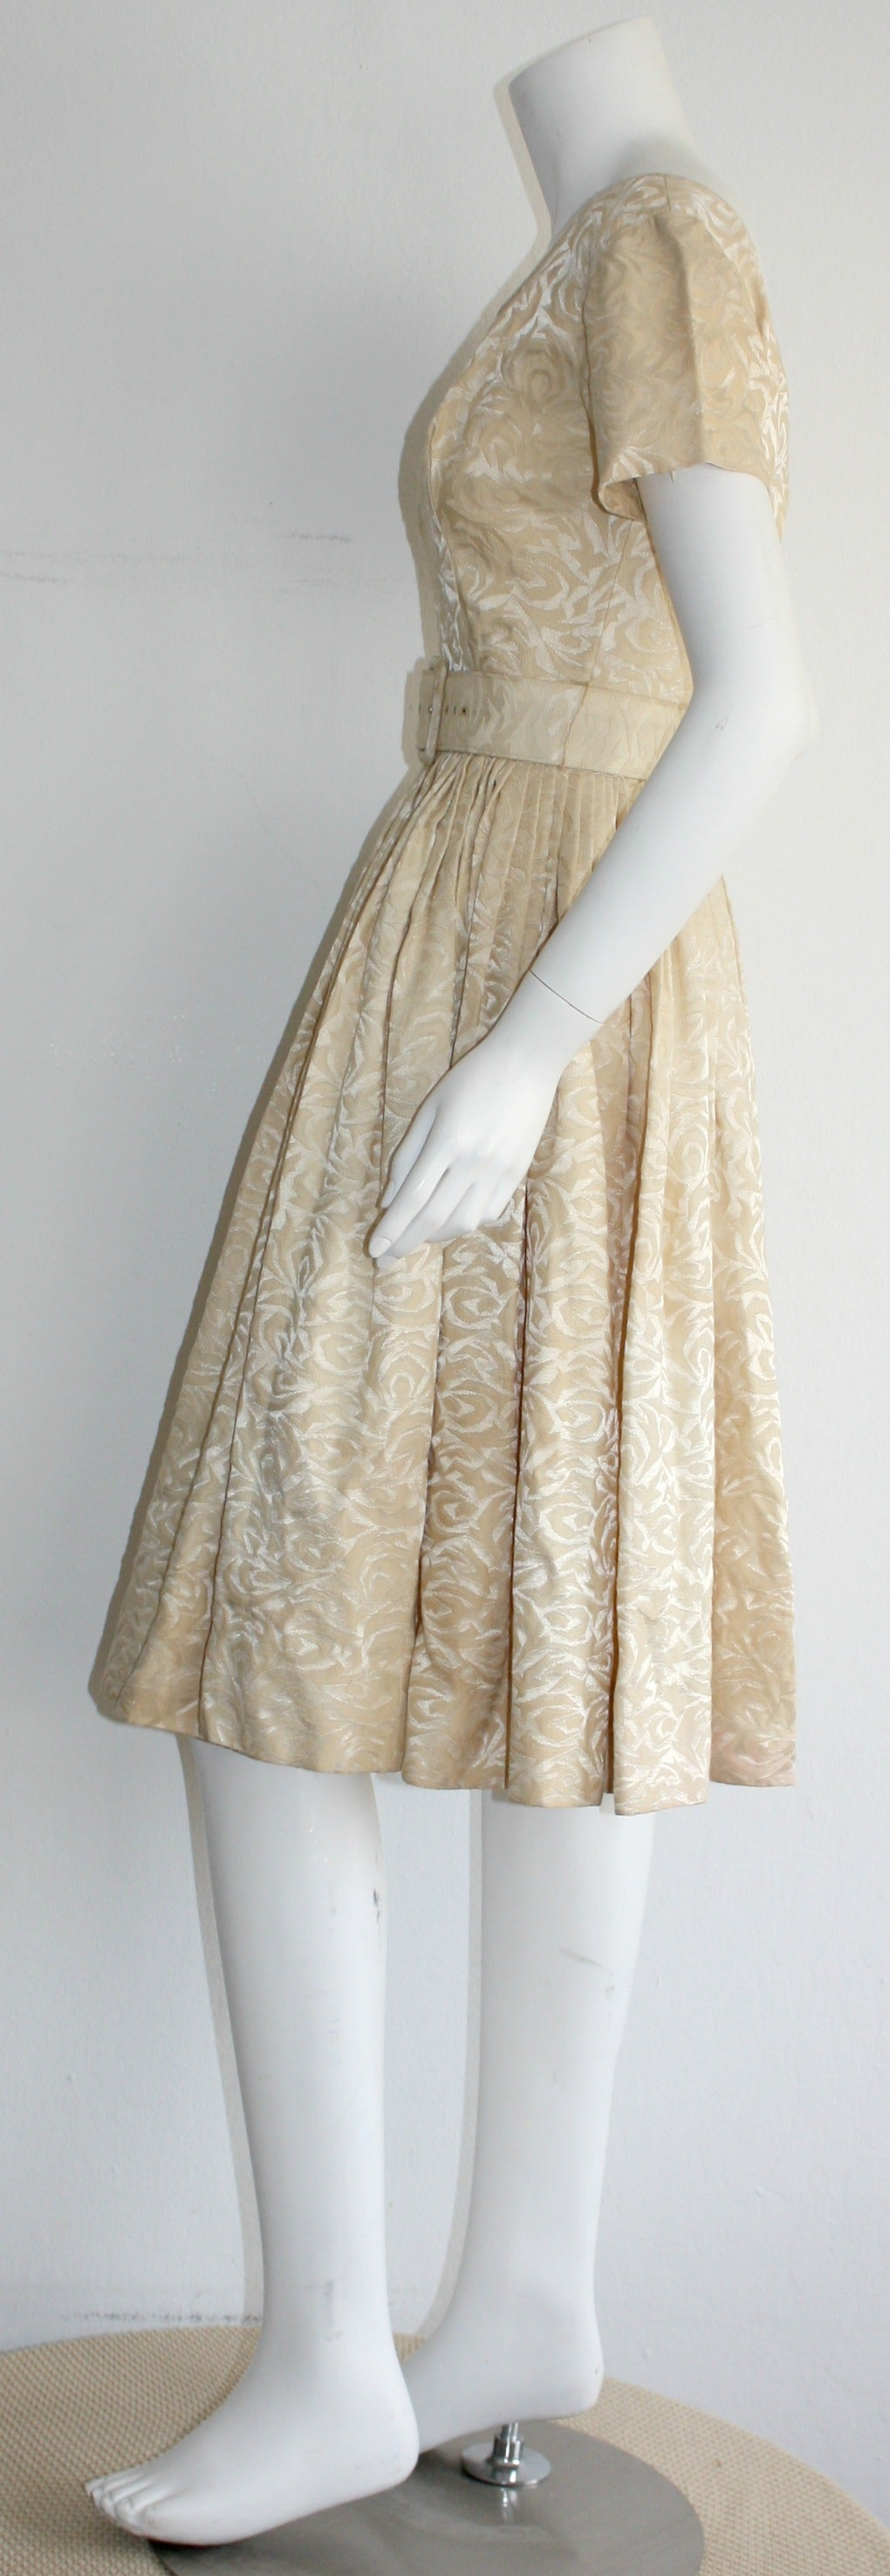 1950s Gigi Young Ivory Floral Silk Dress w/ Belt and Full Skirt For Sale 2